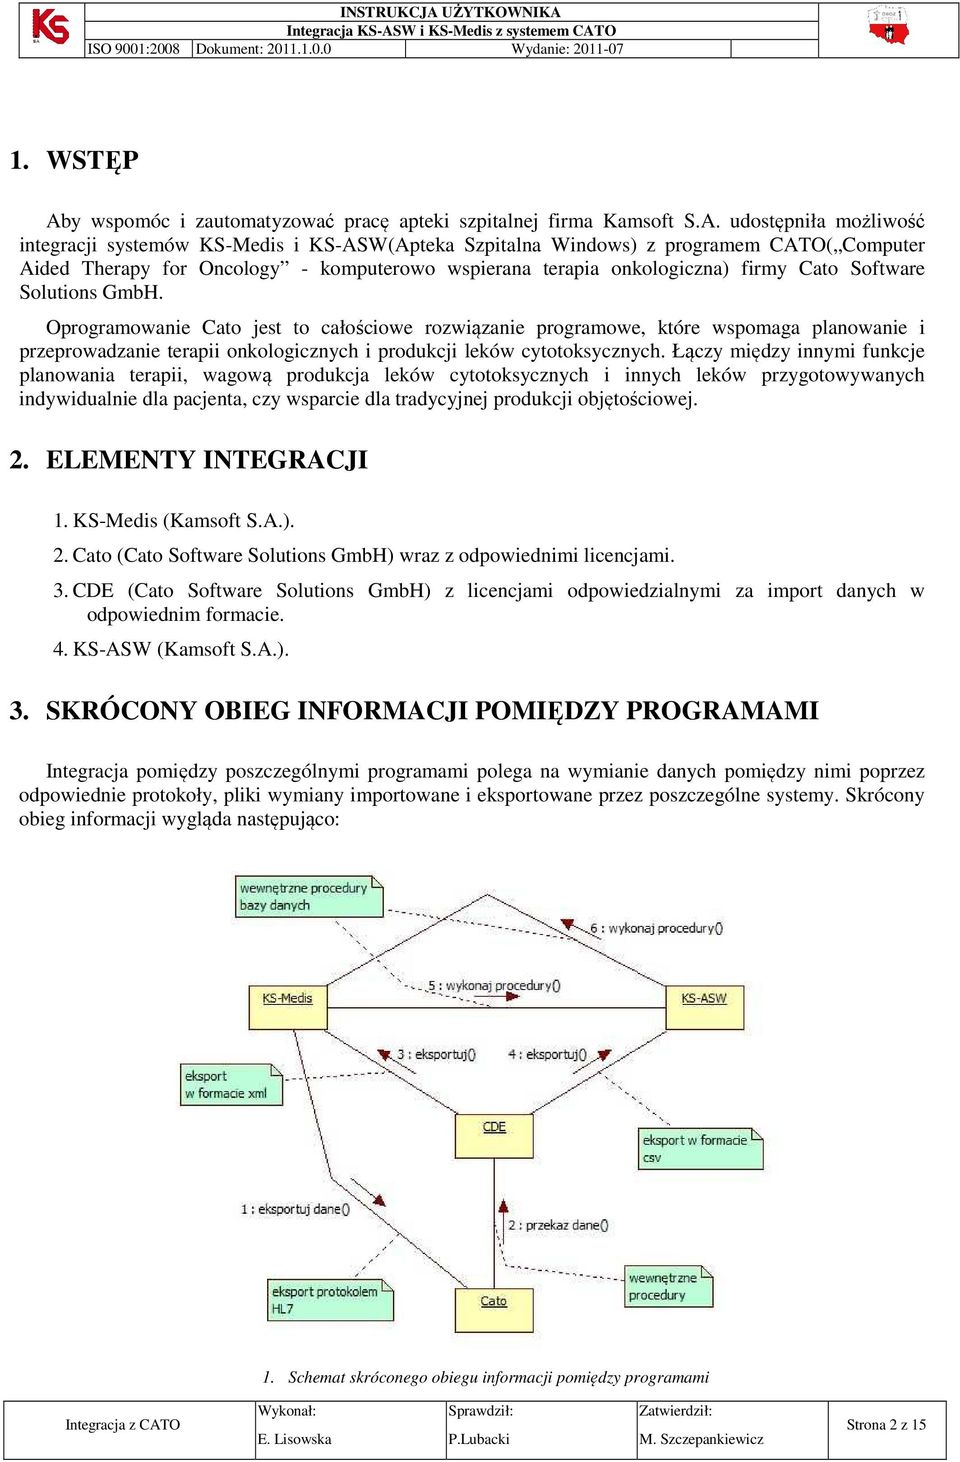 udostępniła możliwość integracji systemów KS-Medis i KS-ASW(Apteka Szpitalna Windows) z programem CATO( Computer Aided Therapy for Oncology - komputerowo wspierana terapia onkologiczna) firmy Cato